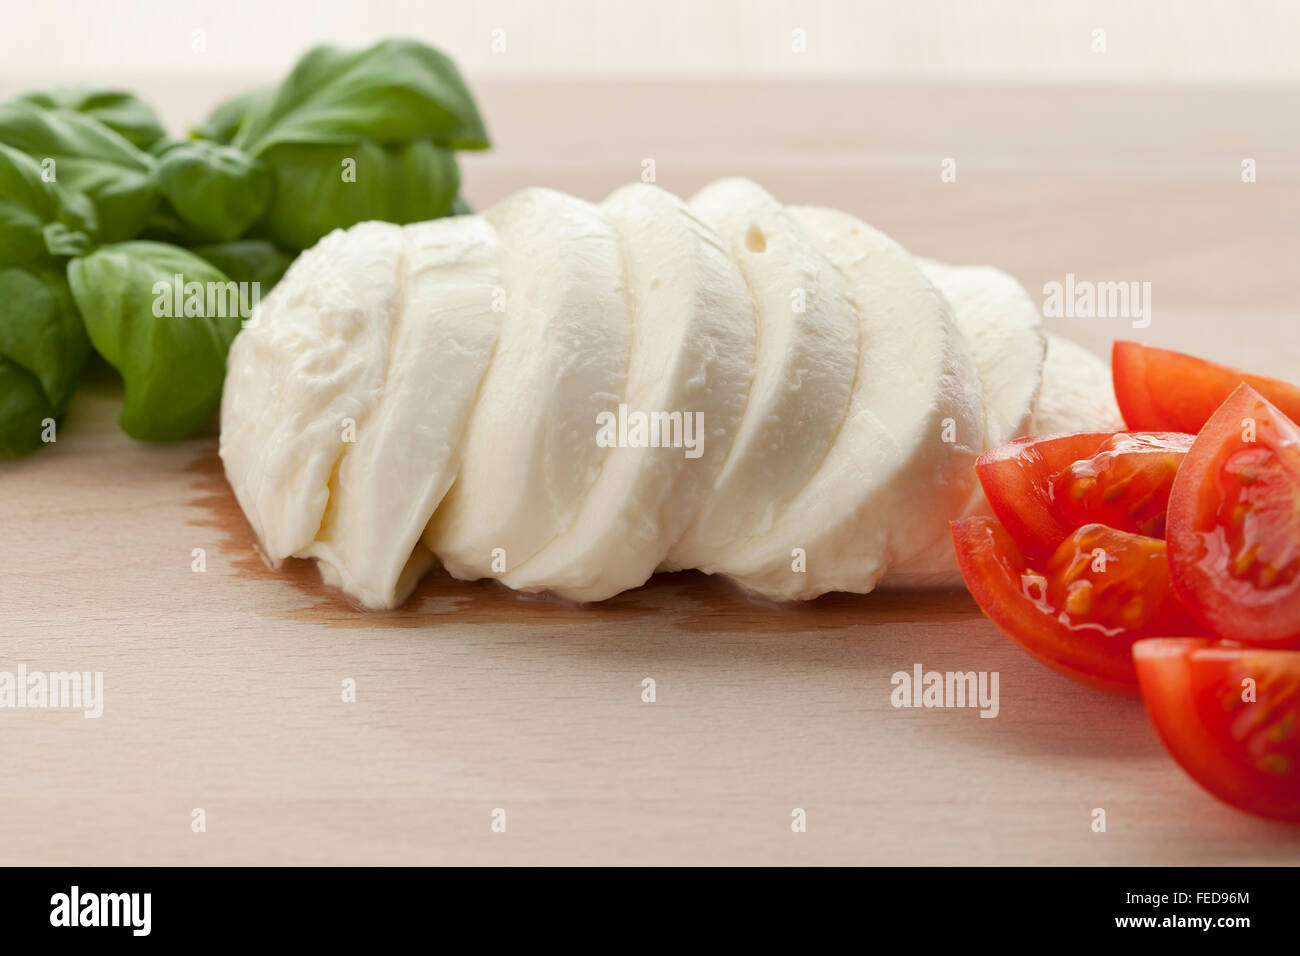 Fresh Mozzarella slices with basil leaves and tomatoes on wooden board - Stock Image